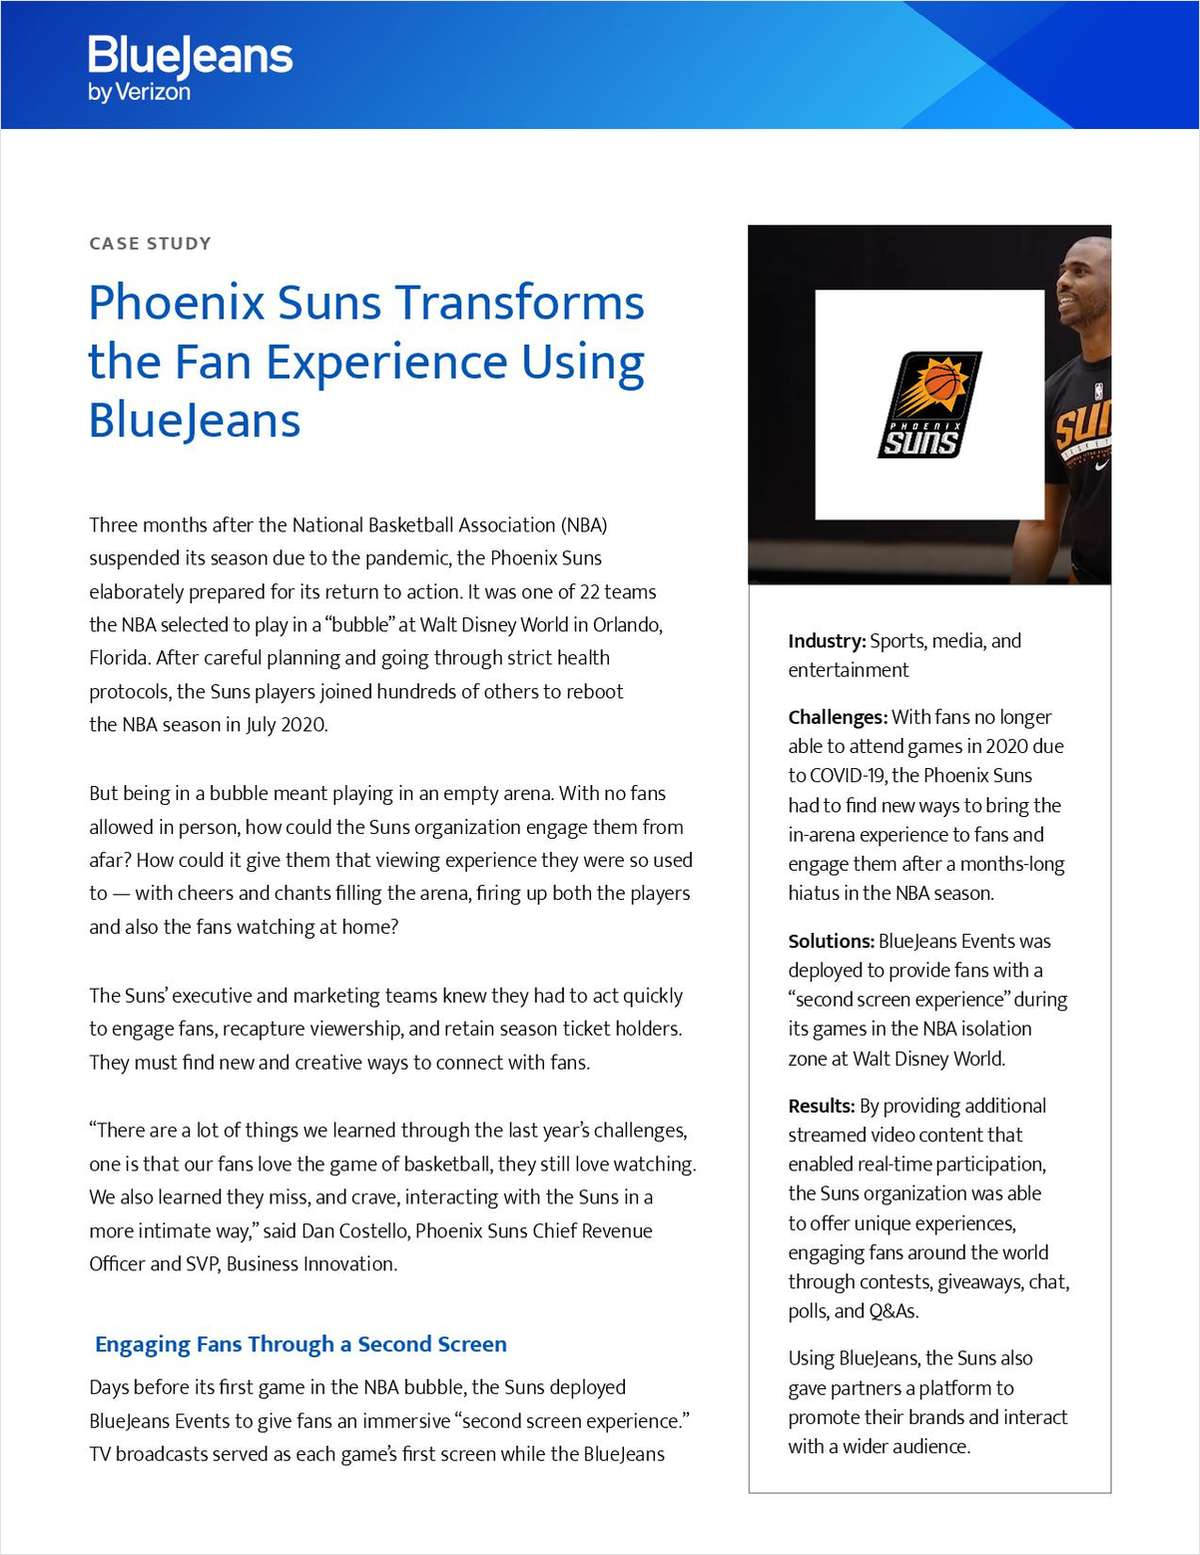 How the Phoenix Suns Transformed the Fan Experience